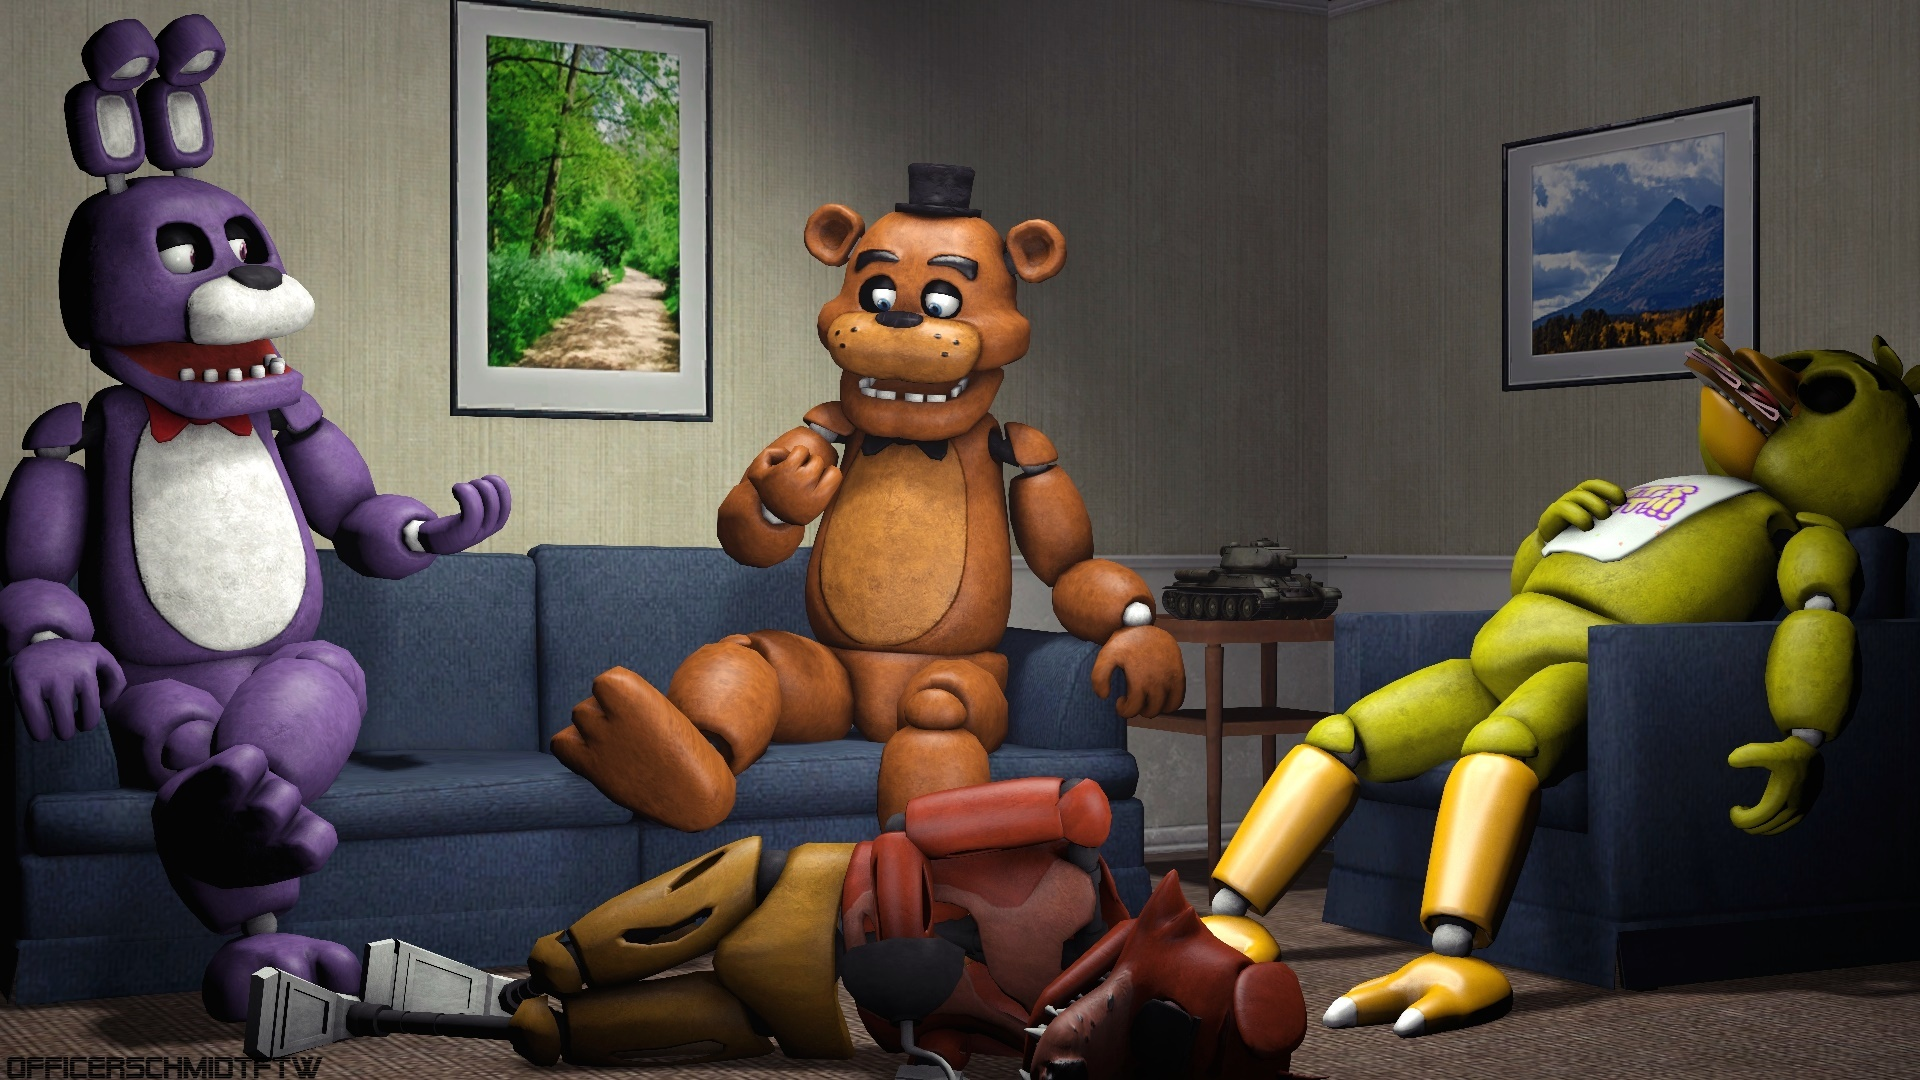 Quality Time With Friends Sfm By Officerschmidtftw On -5985